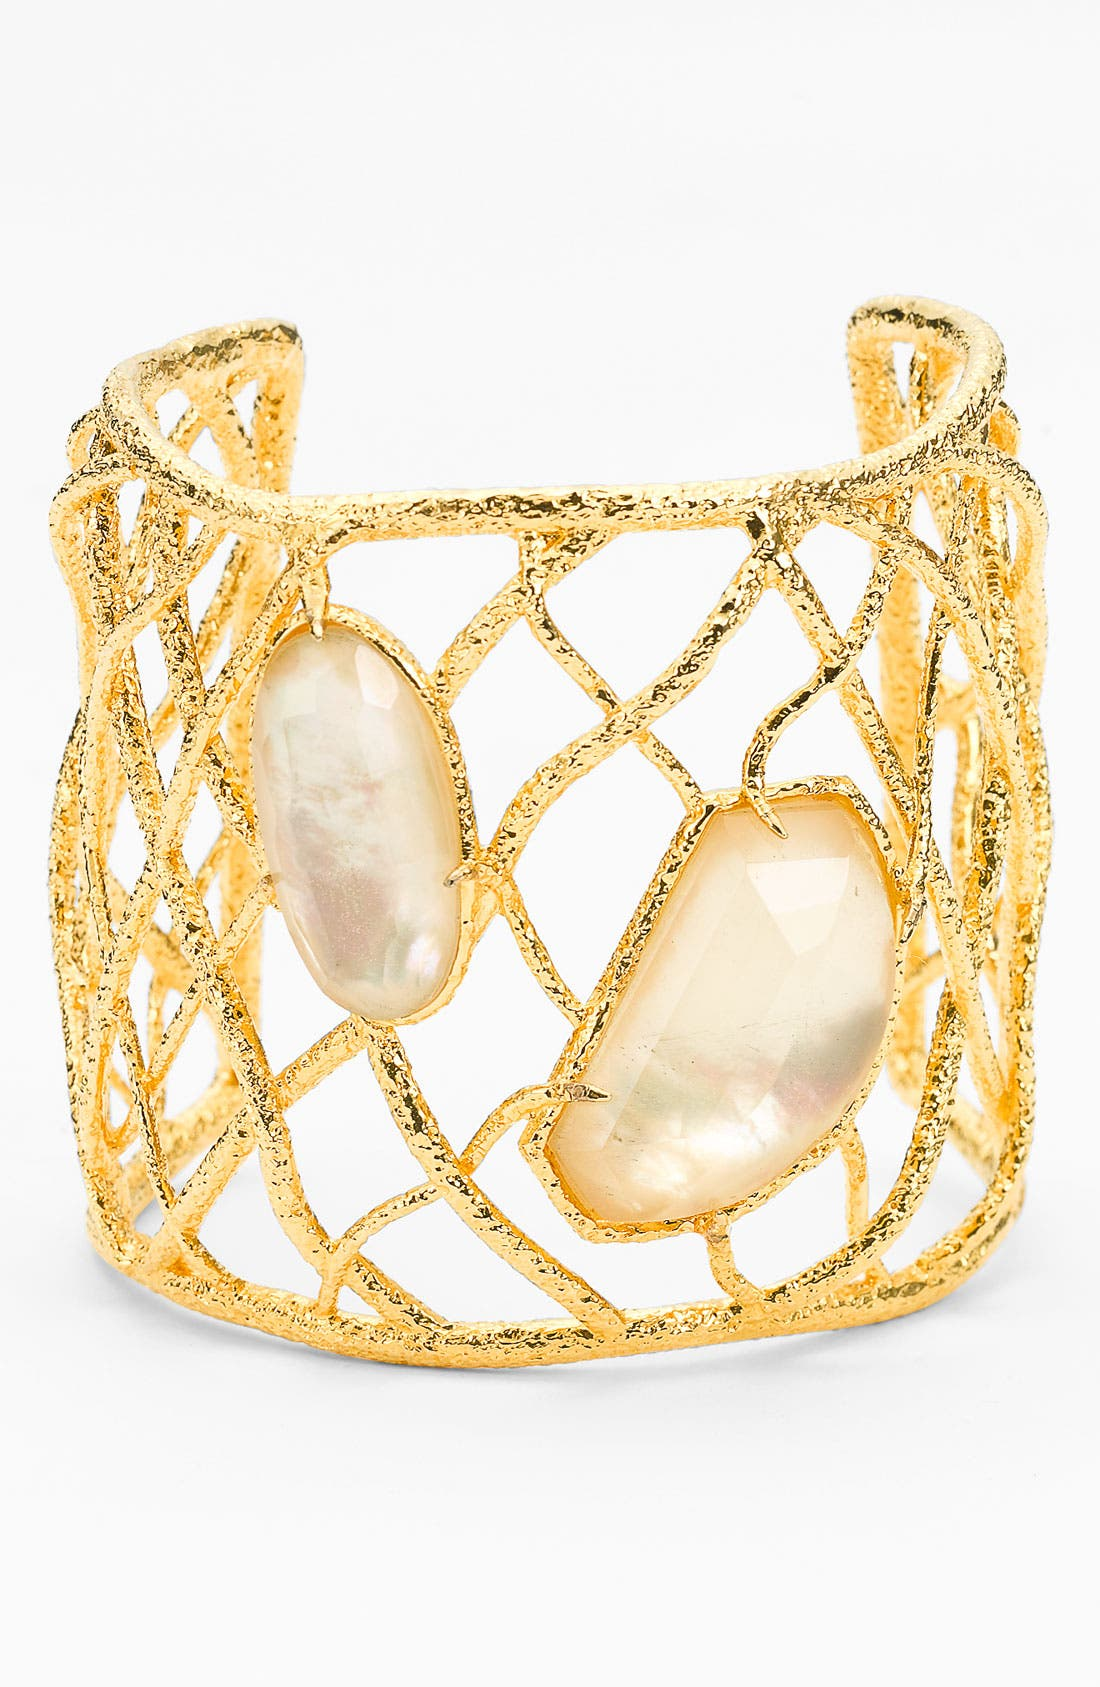 Main Image - Alexis Bittar 'Elements' Woven 2-Stone Cuff